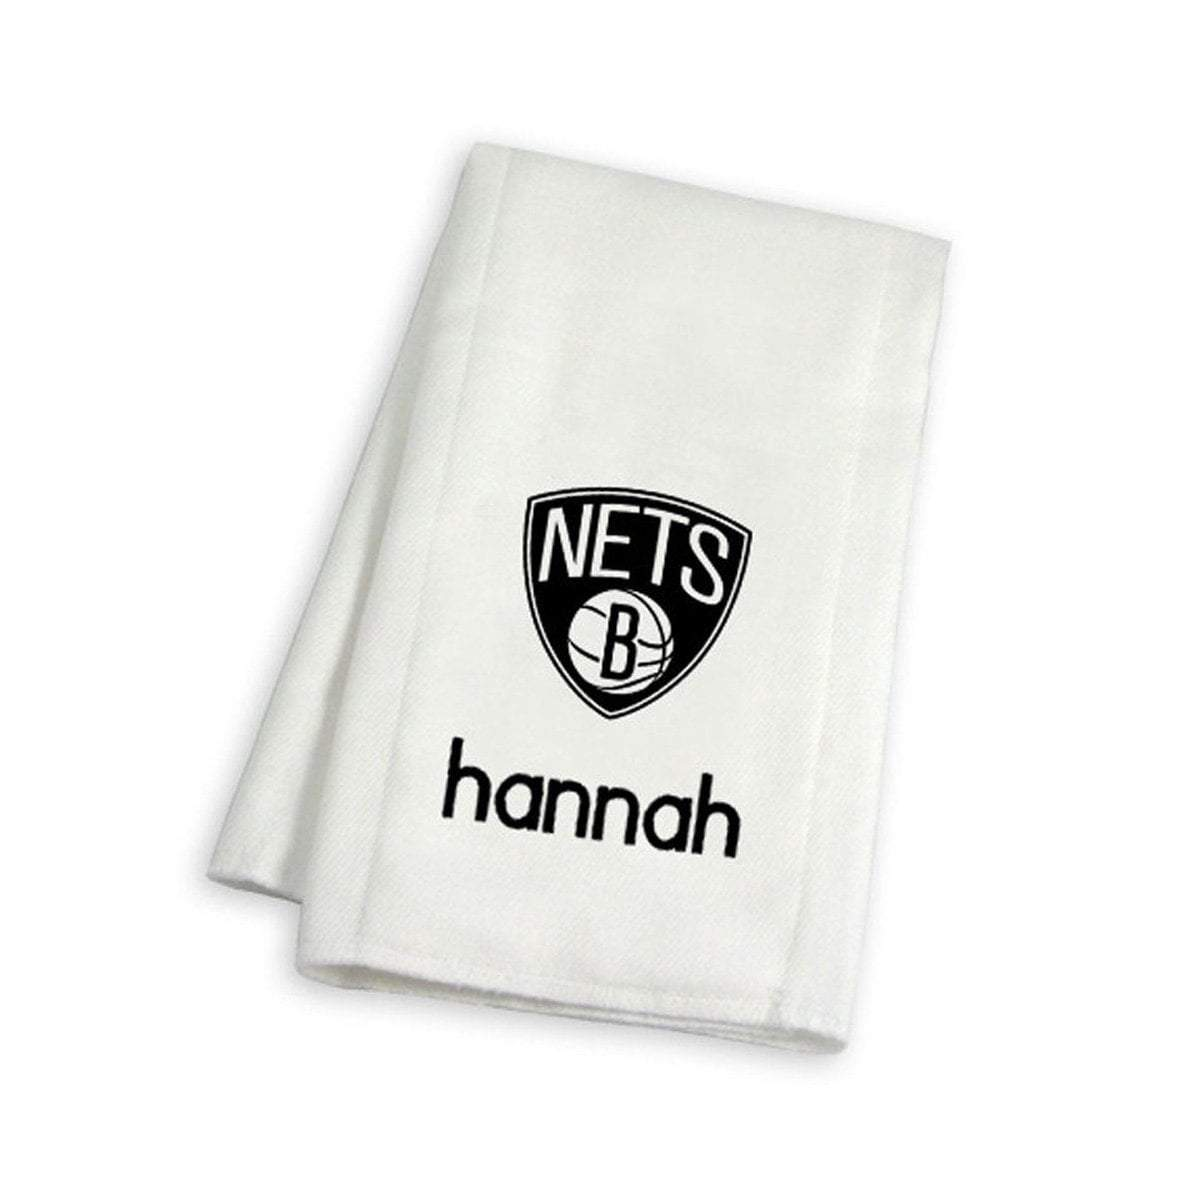 Chad & Jake Accessories Brooklyn Nets Personalized Burp Cloth by Chad & Jake